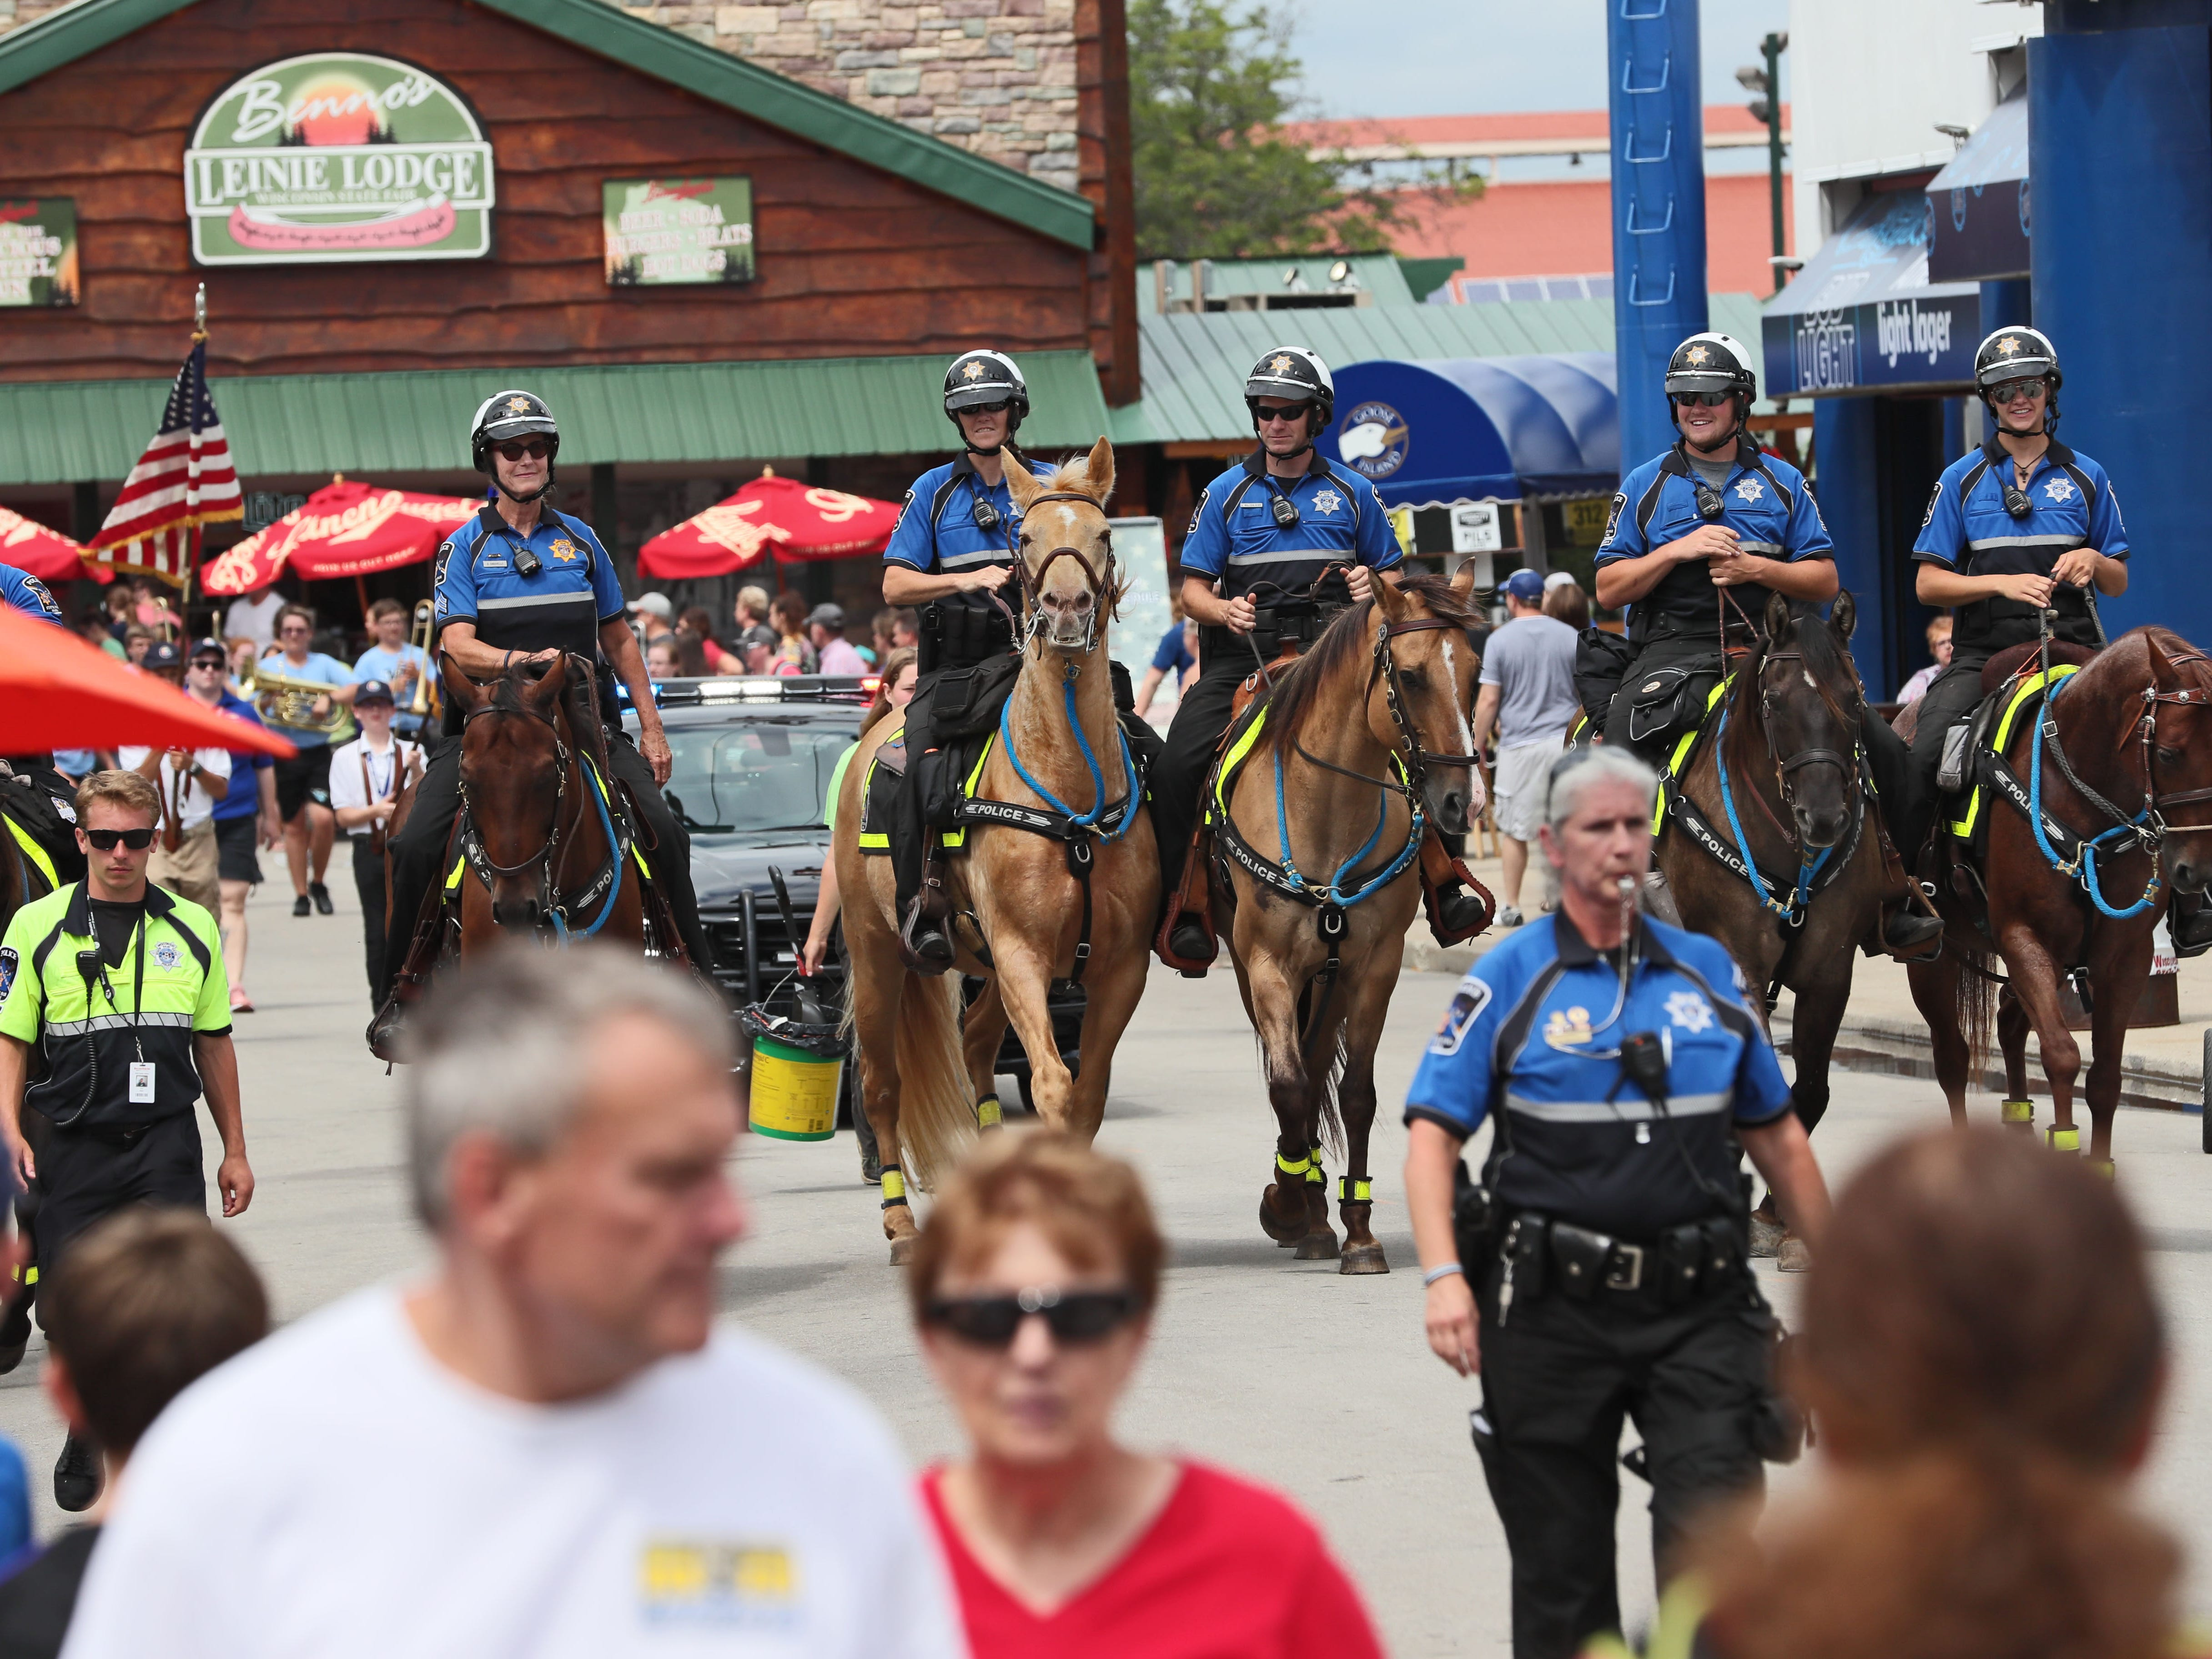 The mounted patrol makes its daily parade through State Fair Park in West Allis during the Wisconsin State Fair. Riders must fulfill three criteria: have extensive training (the unit doesn't offer it); own a horse that can tolerate the pandemonium of the fair; and possess police or reserve officer certification.